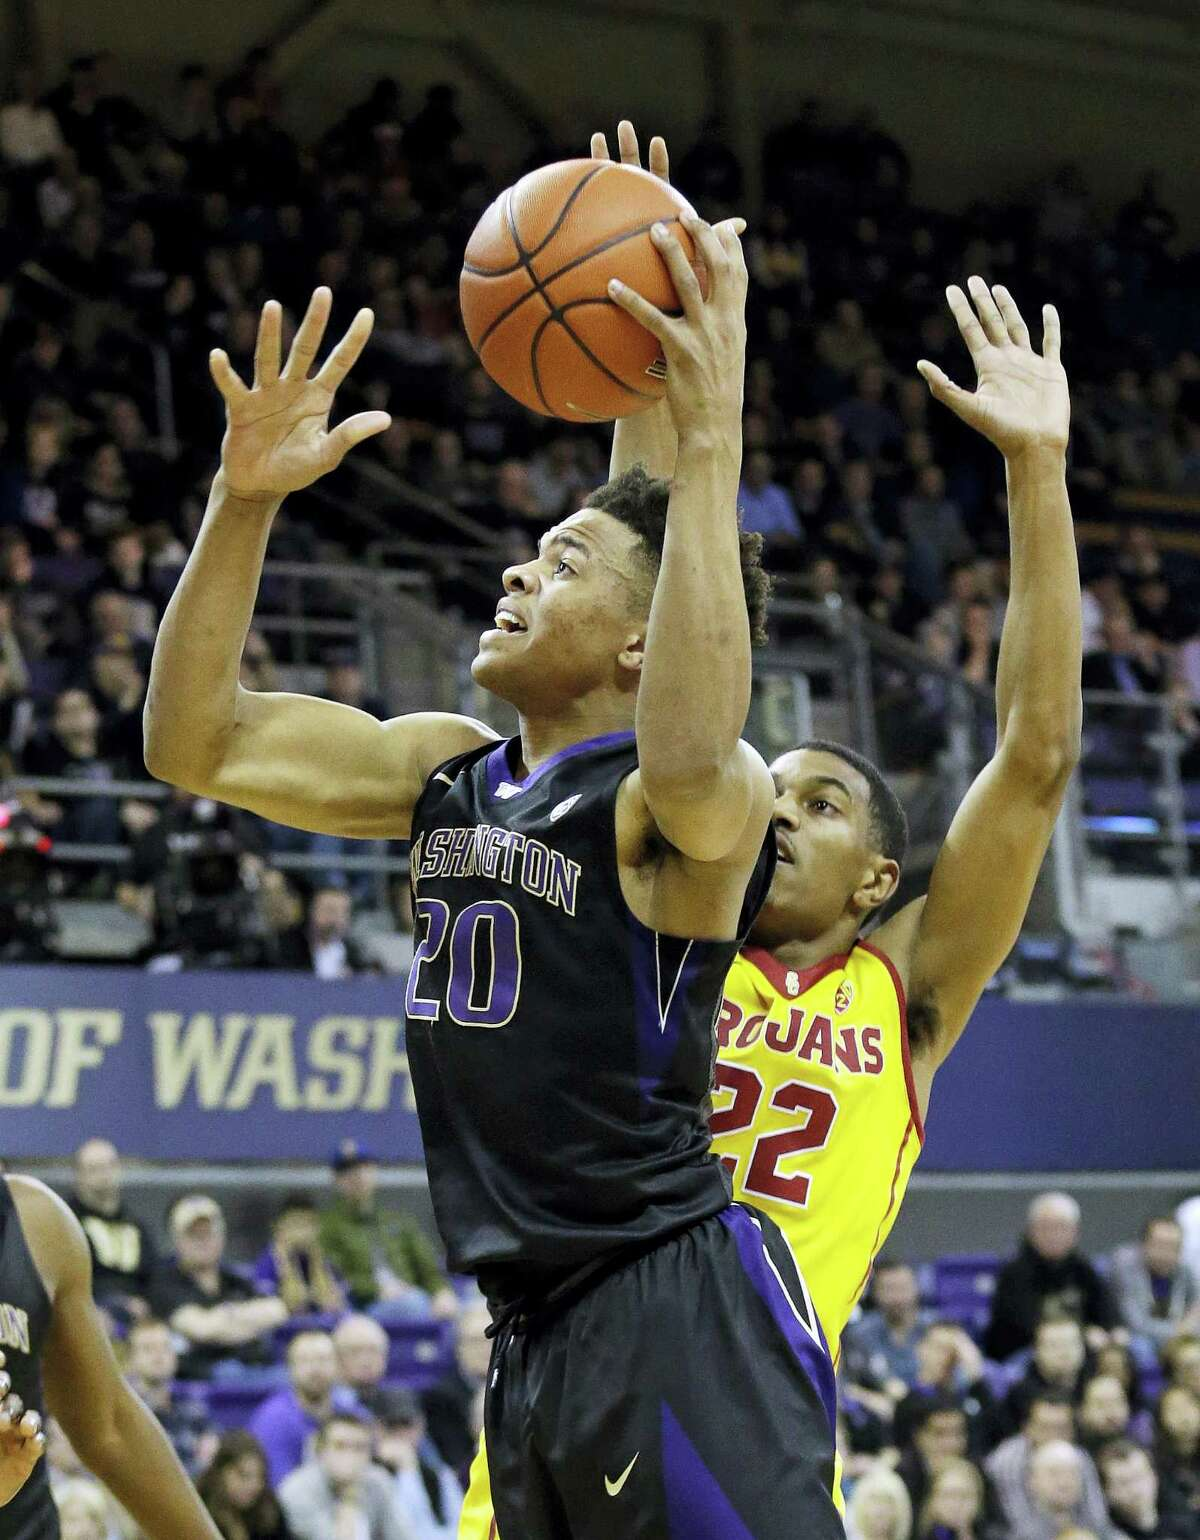 Washington's Markelle Fultz is expected to be taken by the 76ers with the No. 1 pick in Thursday's NBA draft.